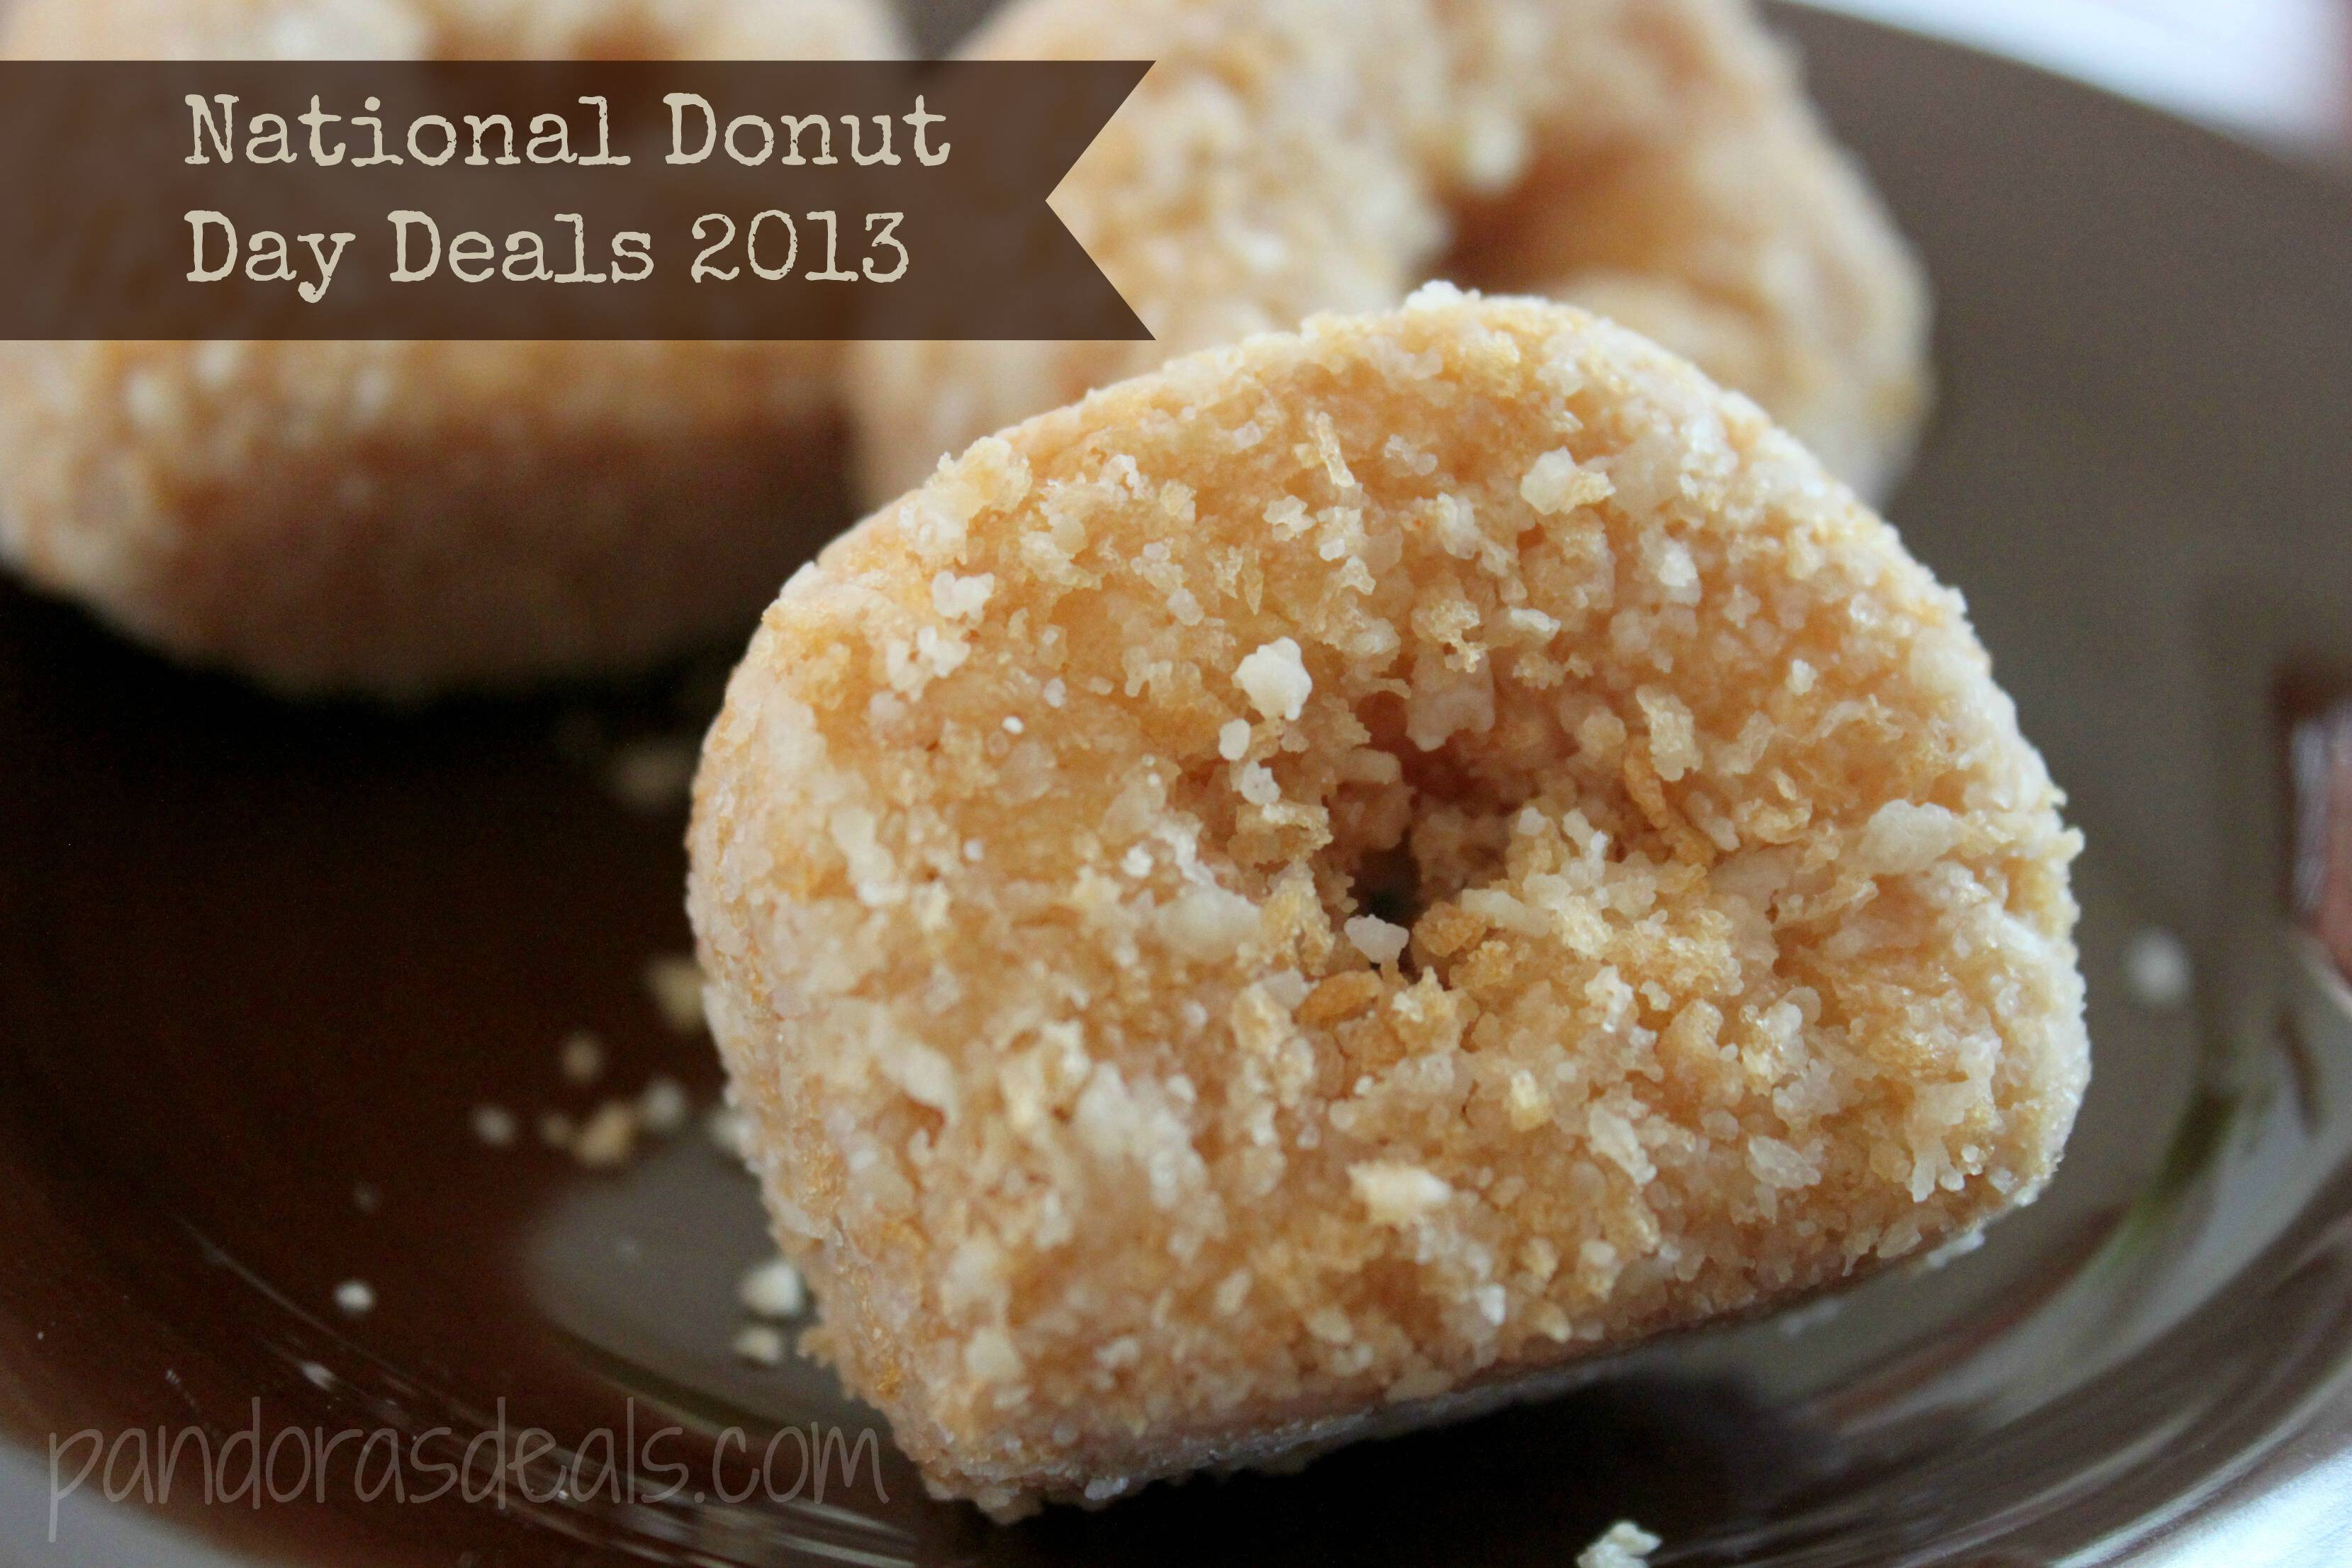 National Donut Day Deals